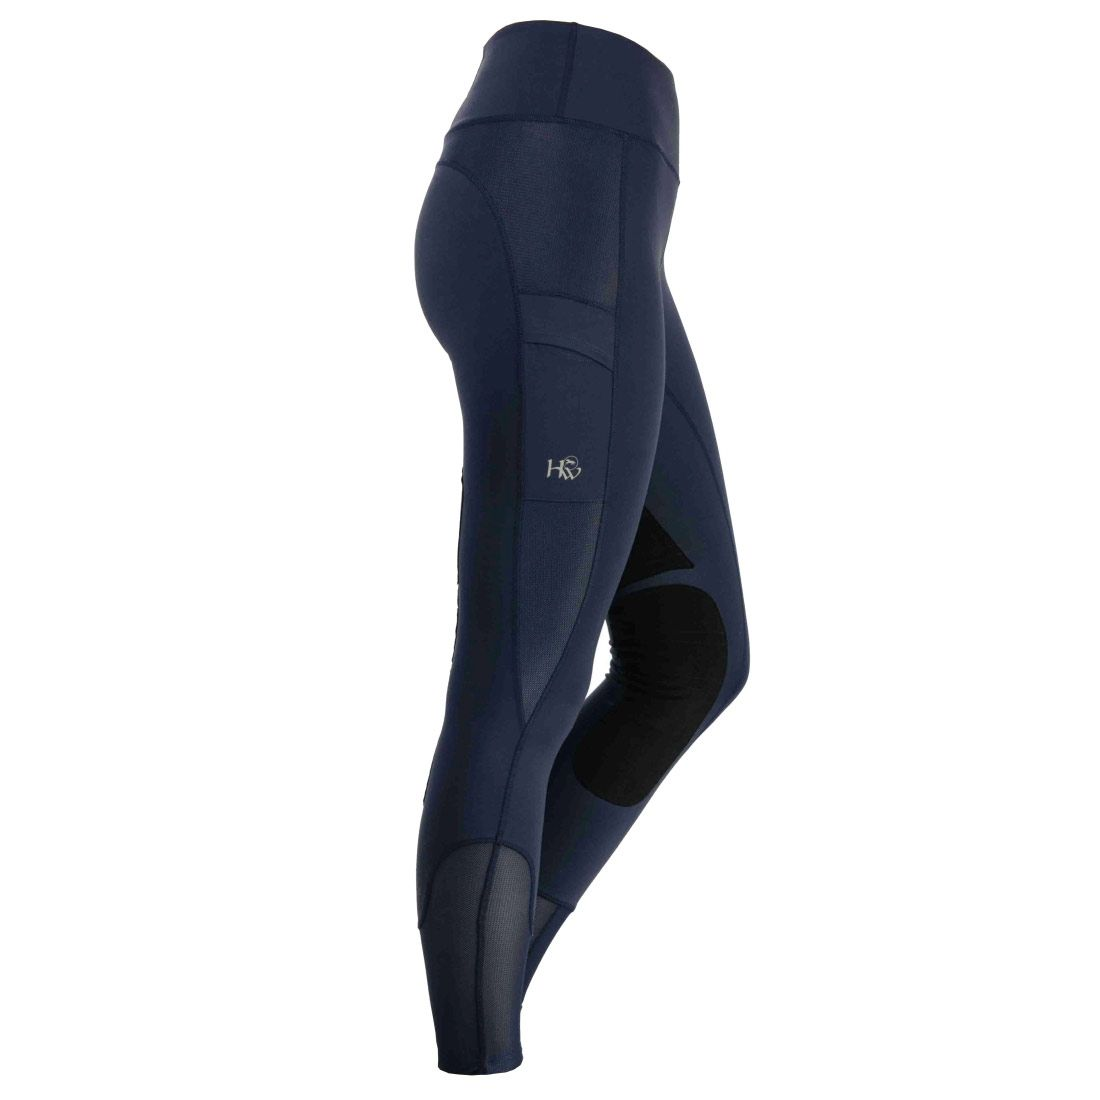 40dcb87a0e0b Horseware Riding Tights - Saddles and Style